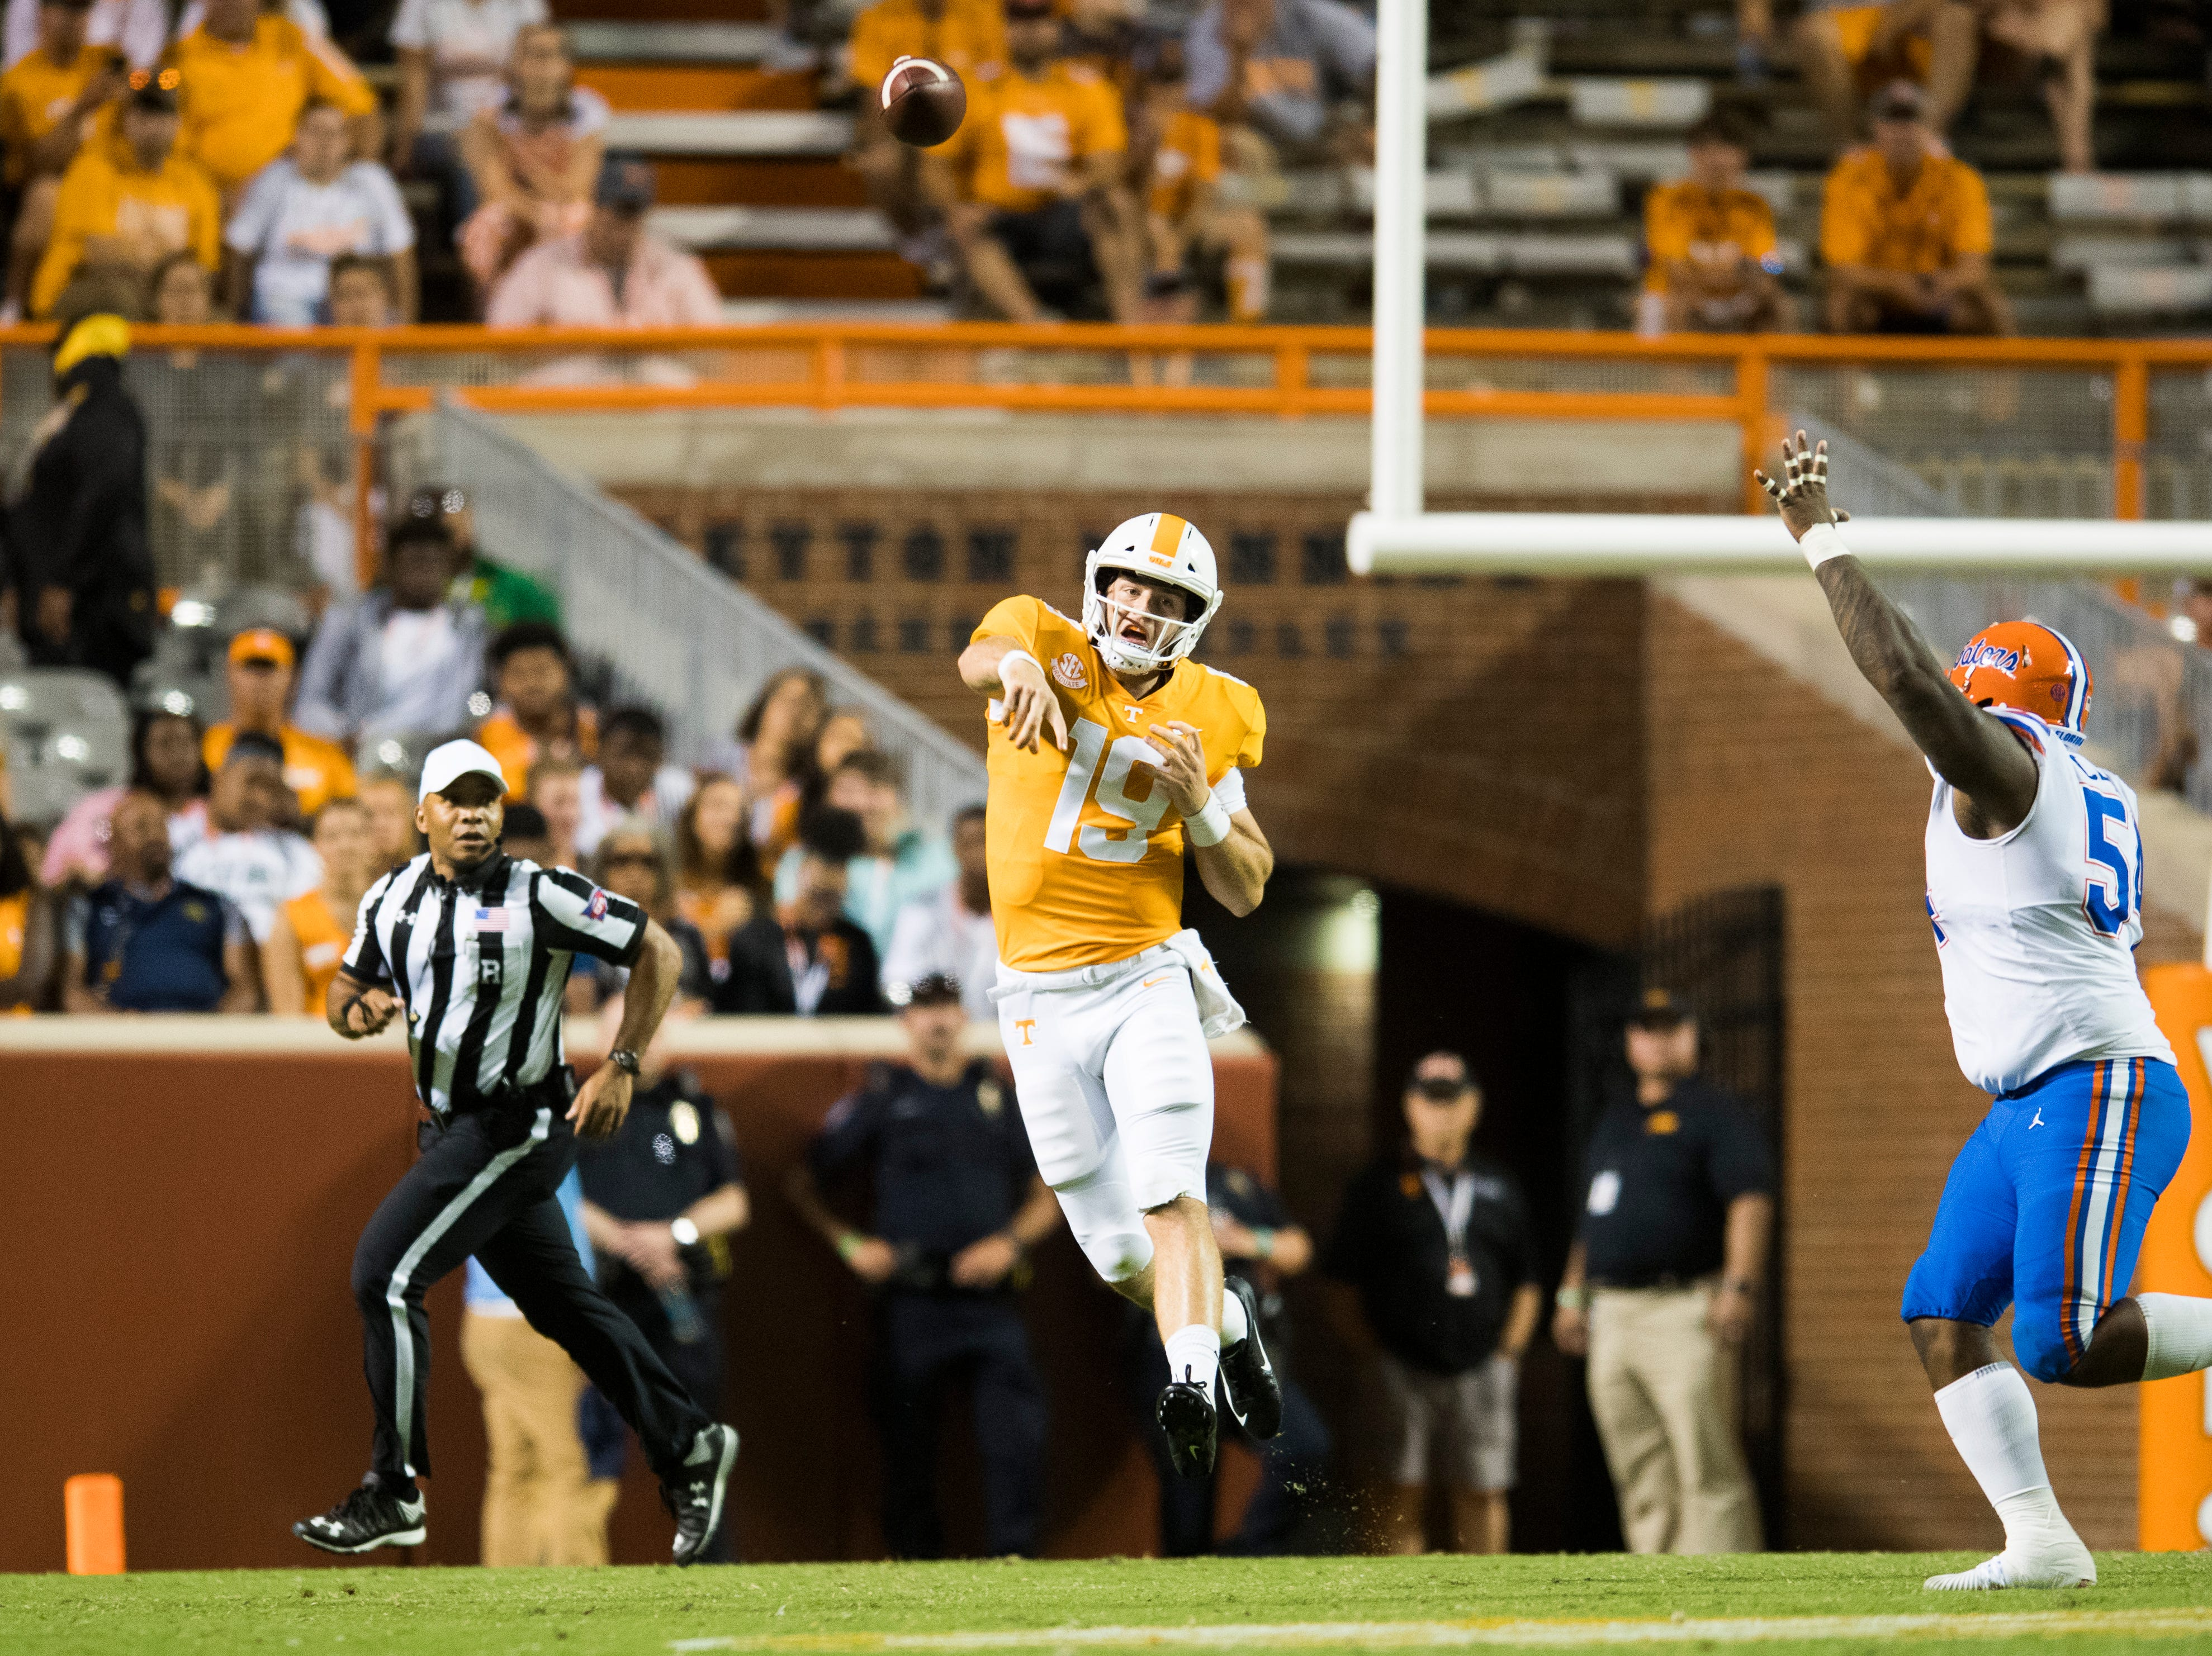 Tennessee quarterback Keller Chryst (19) throws a long pass during a game between Tennessee and Florida at Neyland Stadium in Knoxville, Tennessee on Saturday, September 22, 2018.